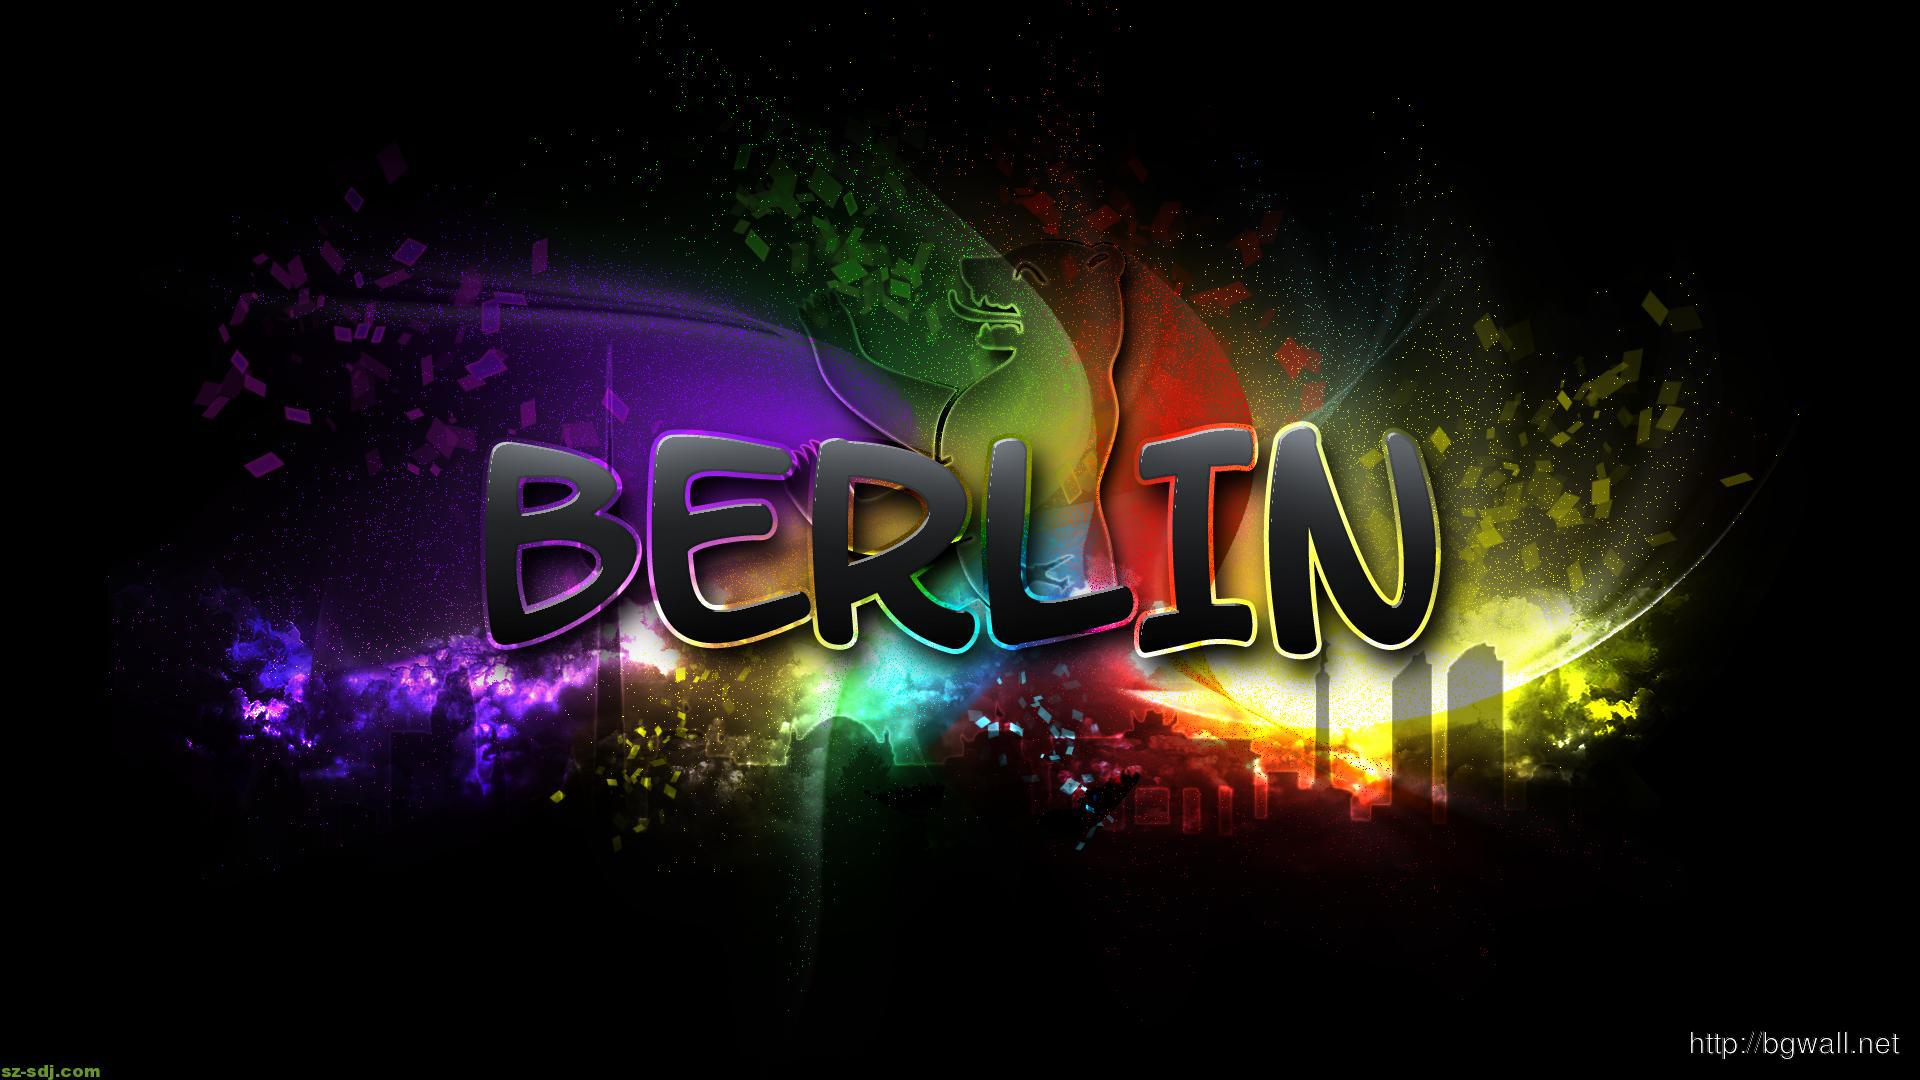 Cool Berlin Text Abstract Wallpaper Widescreen Desktop Hd